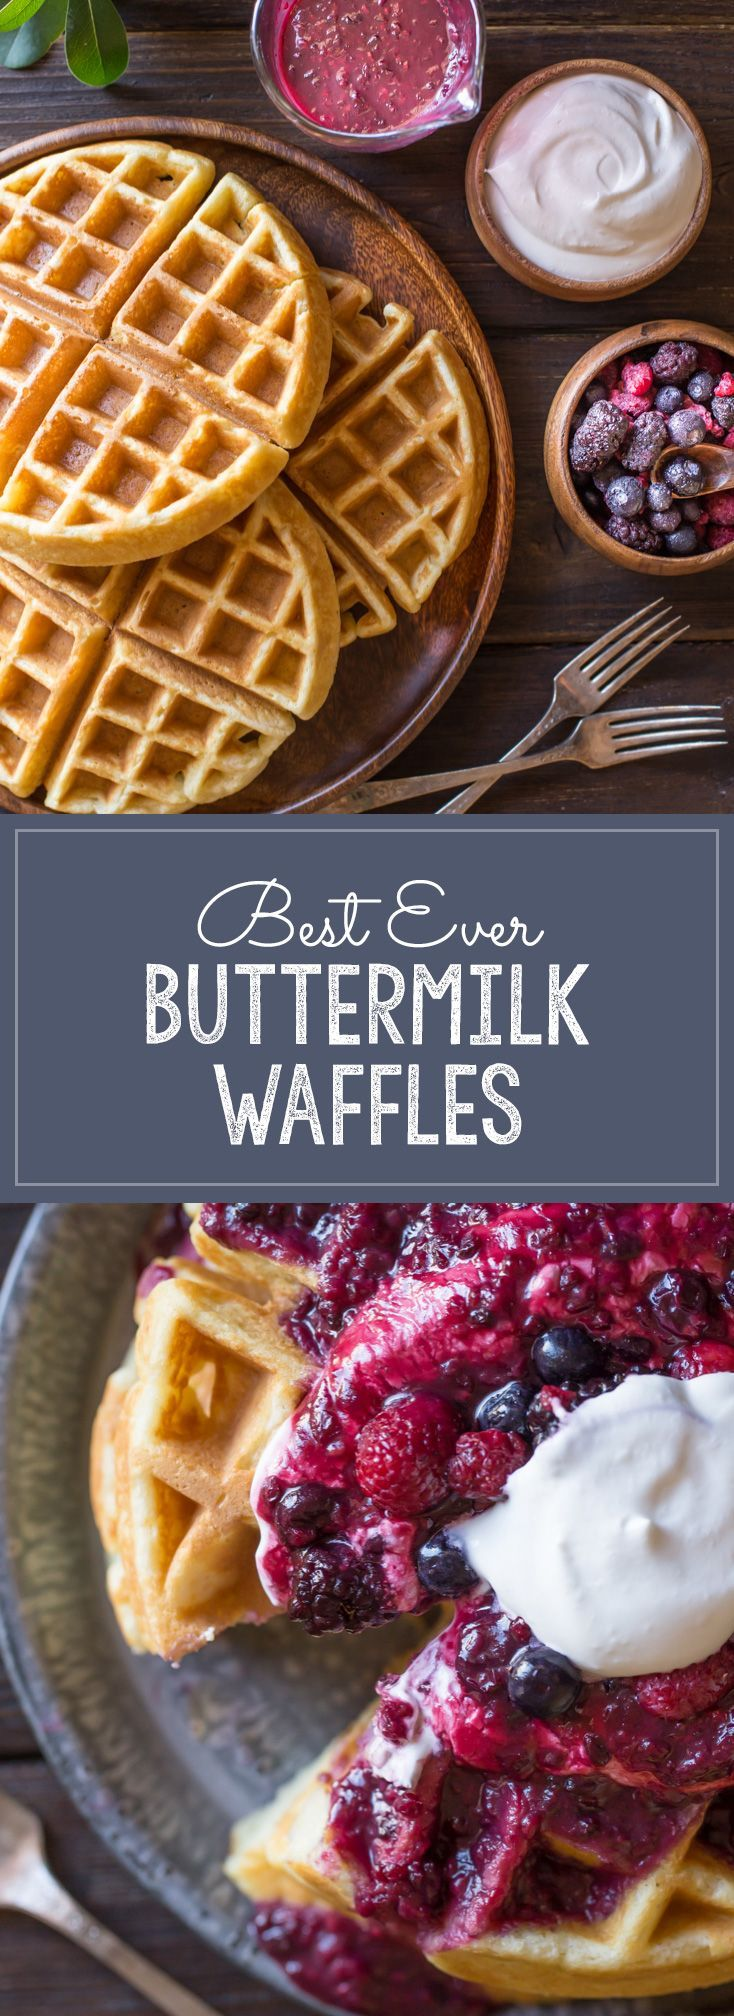 1000+ ideas about Buttermilk Waffles on Pinterest | Waffles, Waffle ...